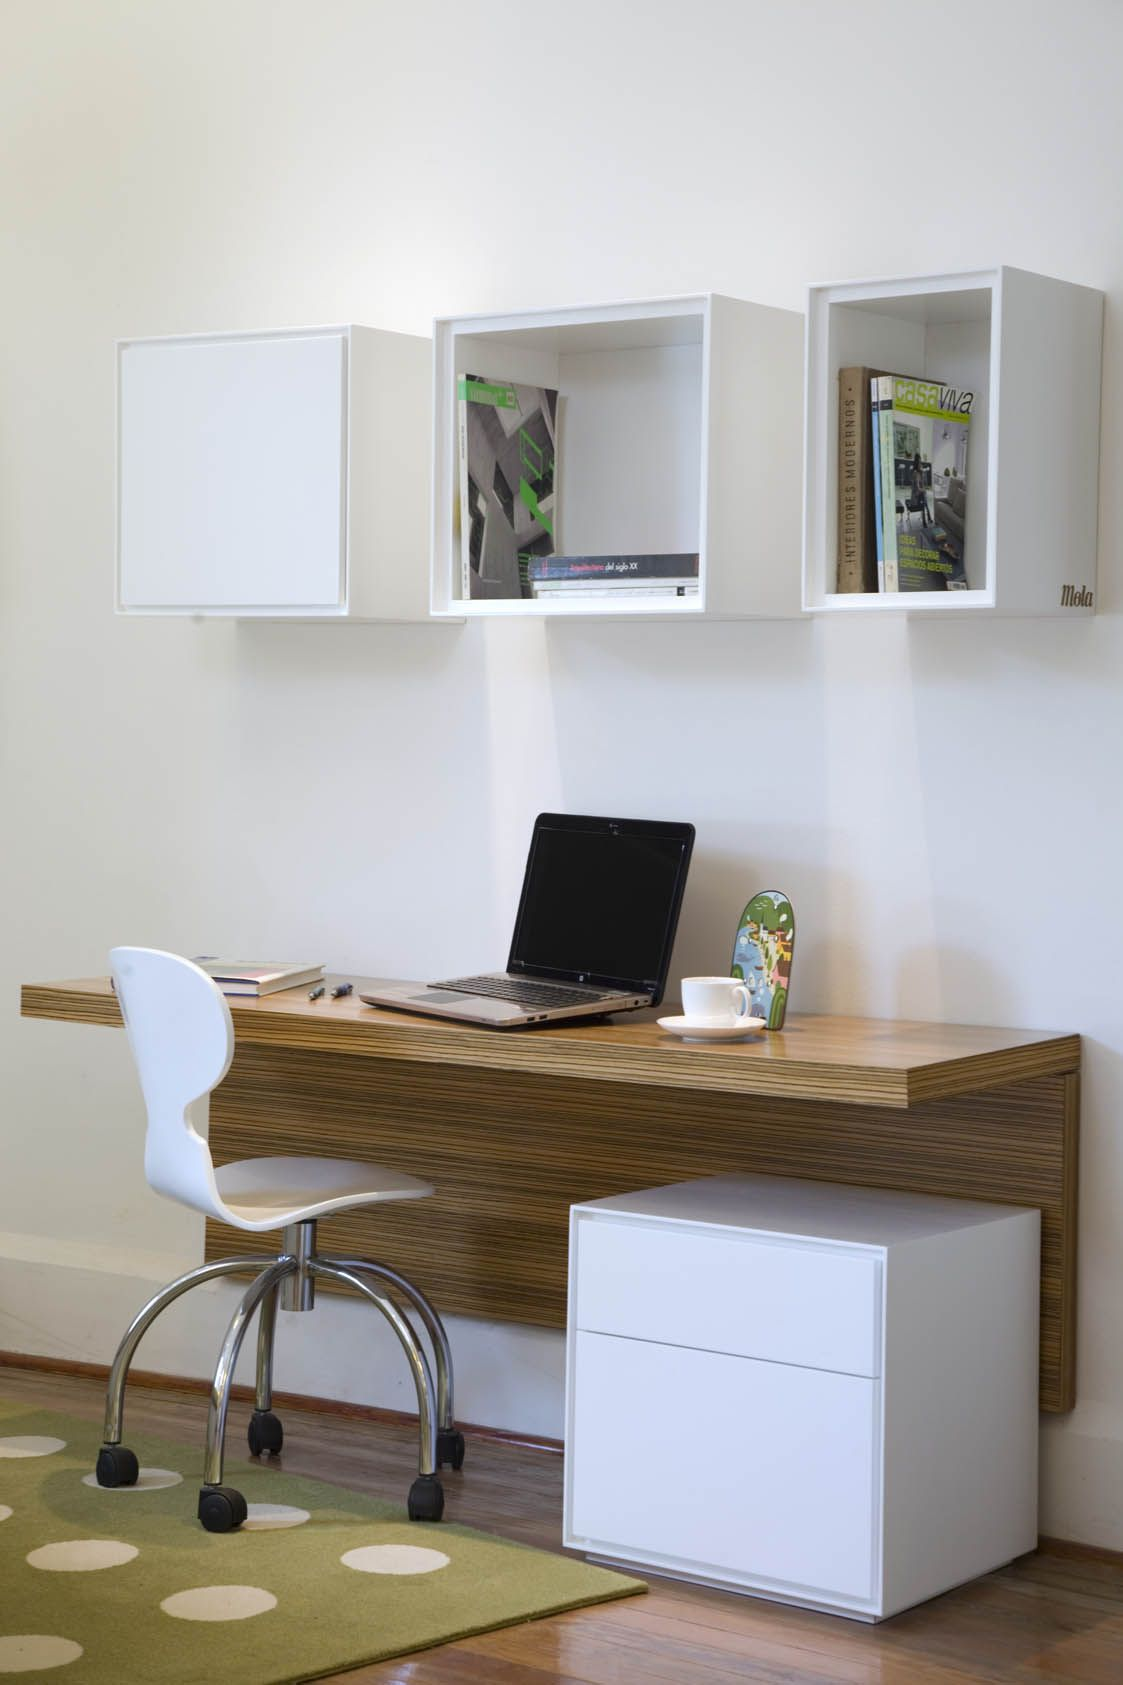 Idee De Bureau A Faire Soi Meme Pin By Byron Stefiuk On Industrial Office Bureau Mobilier De